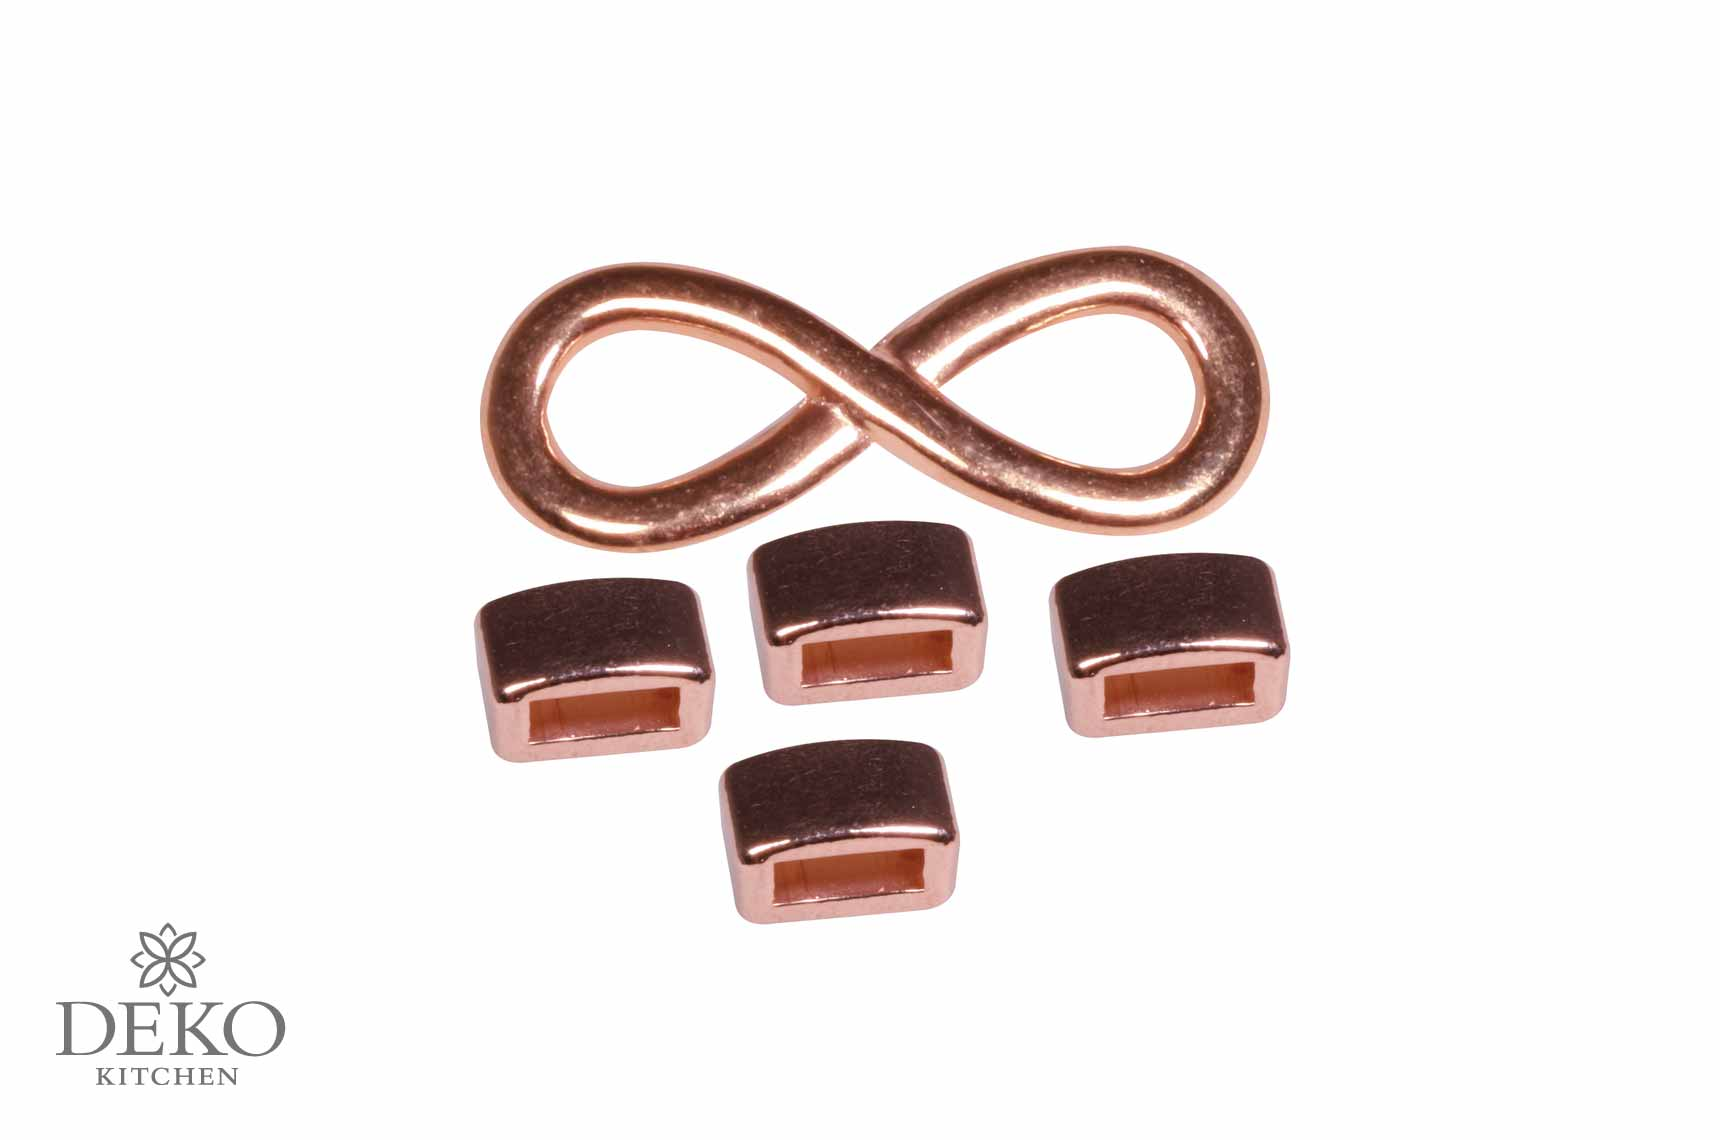 Schmuck zierelement infinity aus metall ros gold deko for Rosegold deko